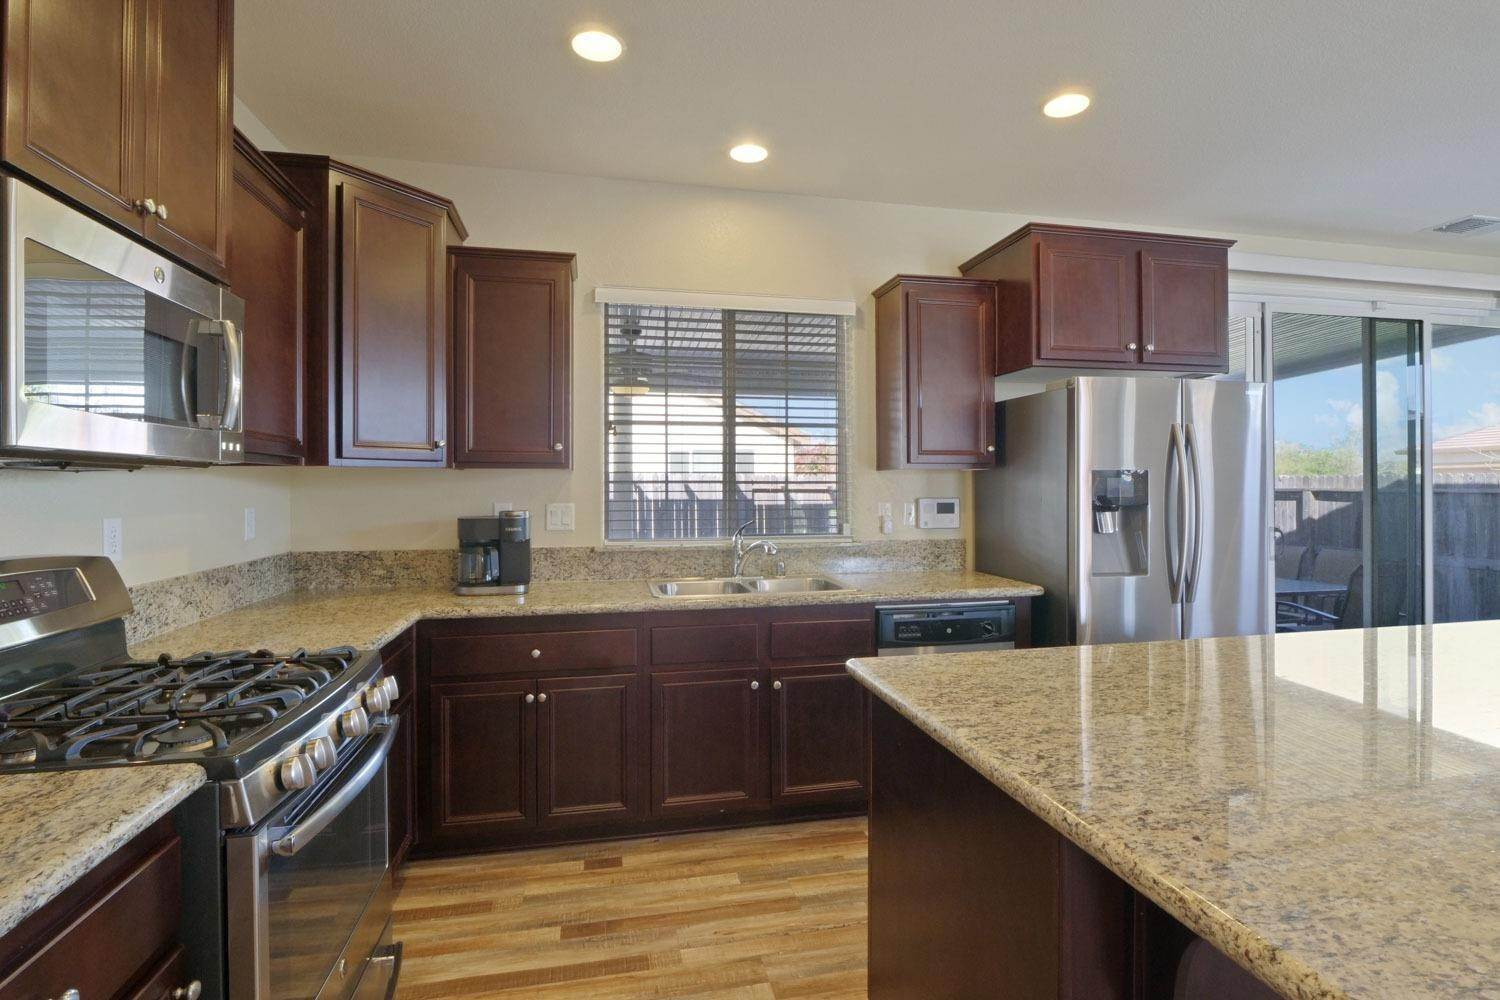 Single Family Homes for Active at 10647 Albert Drive Stockton, California 95209 United States